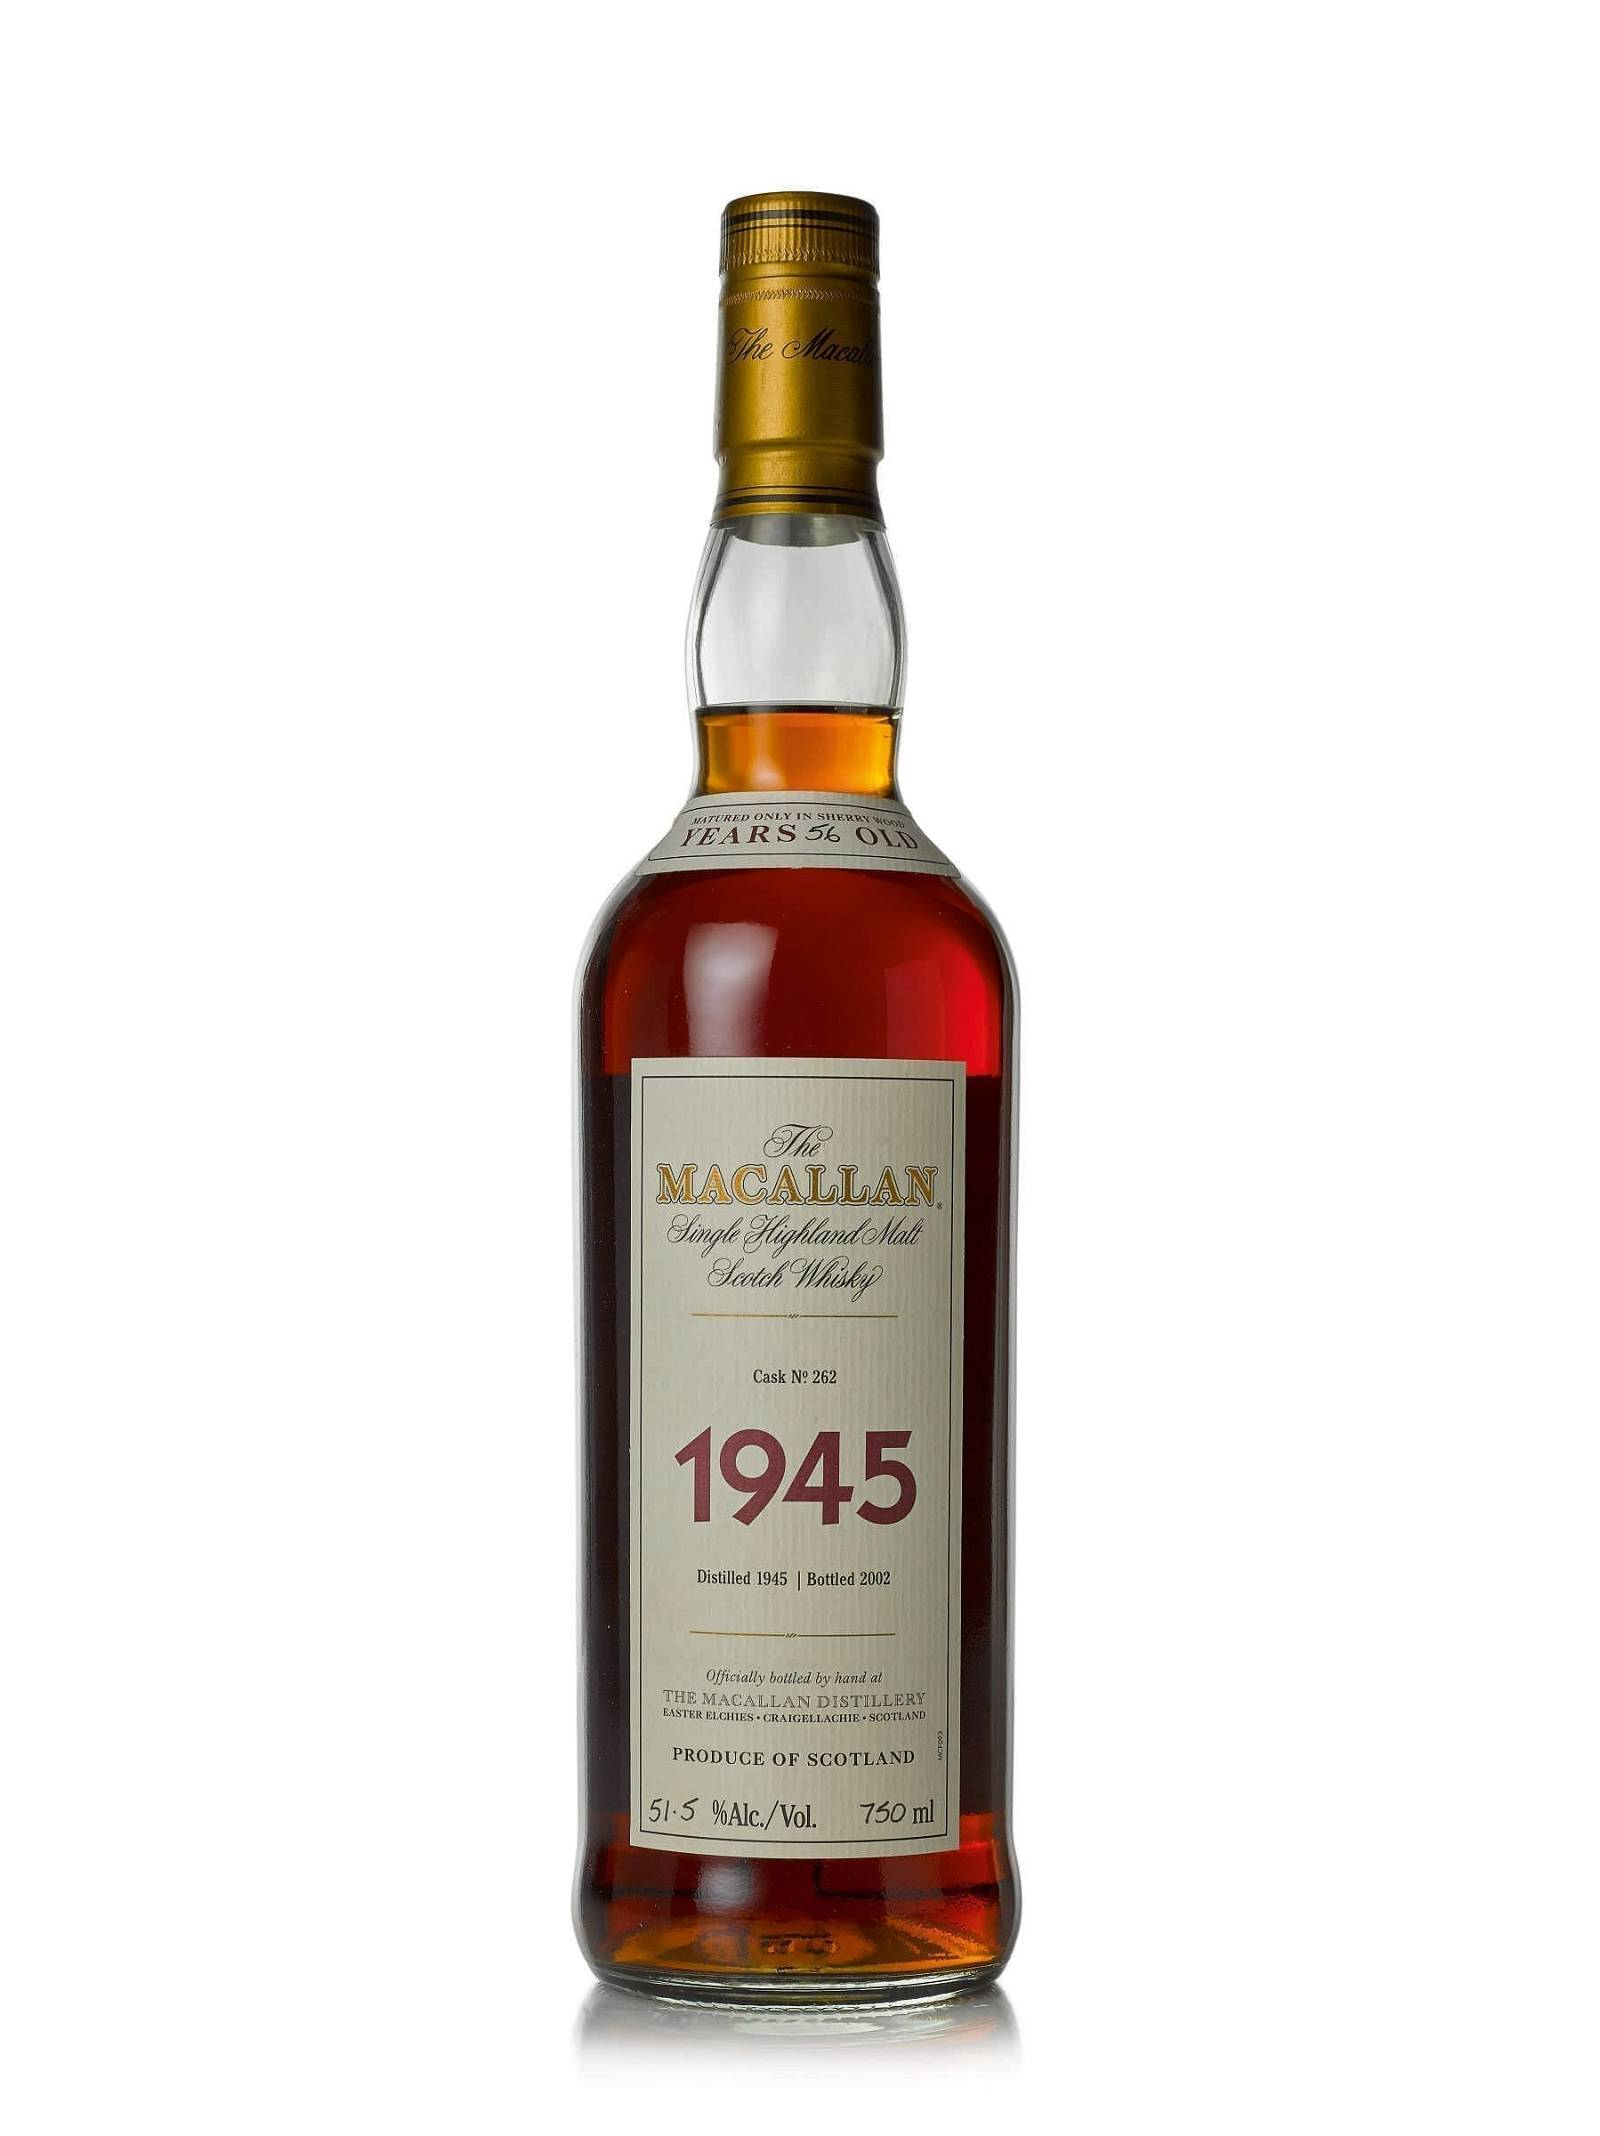 The Macallan Fine and Rare 56 Year Old 1945 Estimate $38/50,000